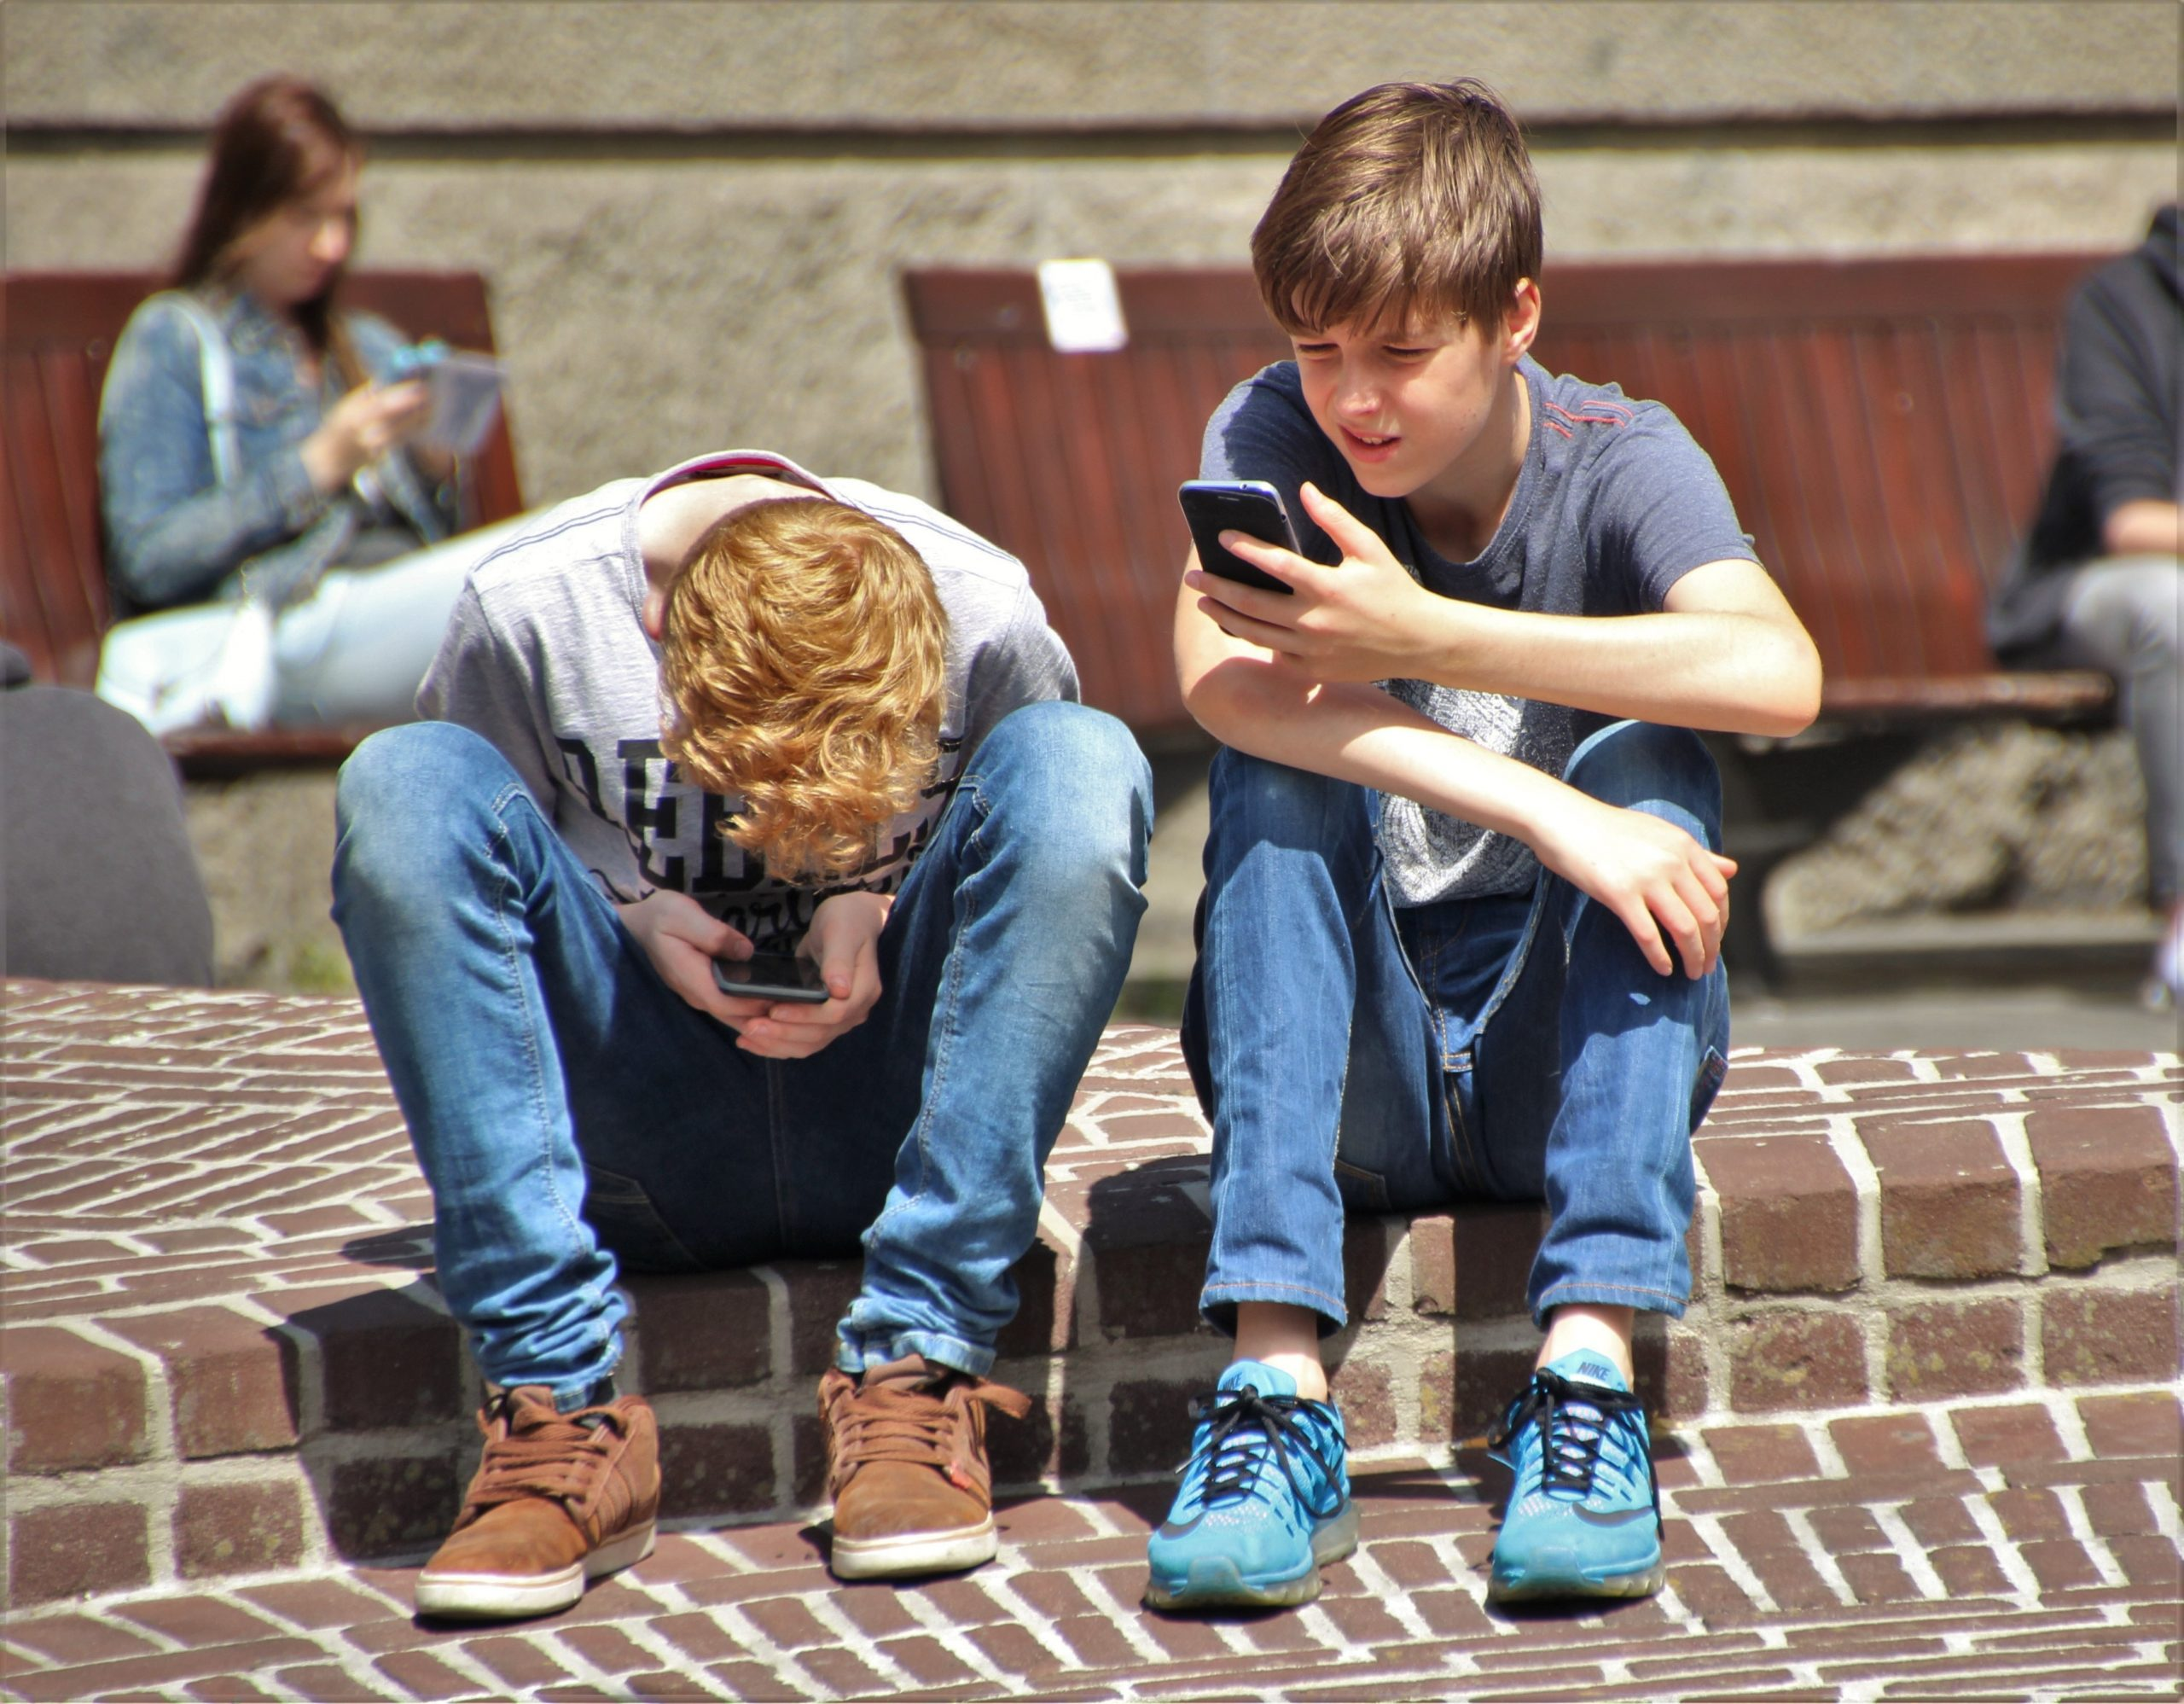 Mobile Technology: How to use it to teach teens 8 key life lessons.​